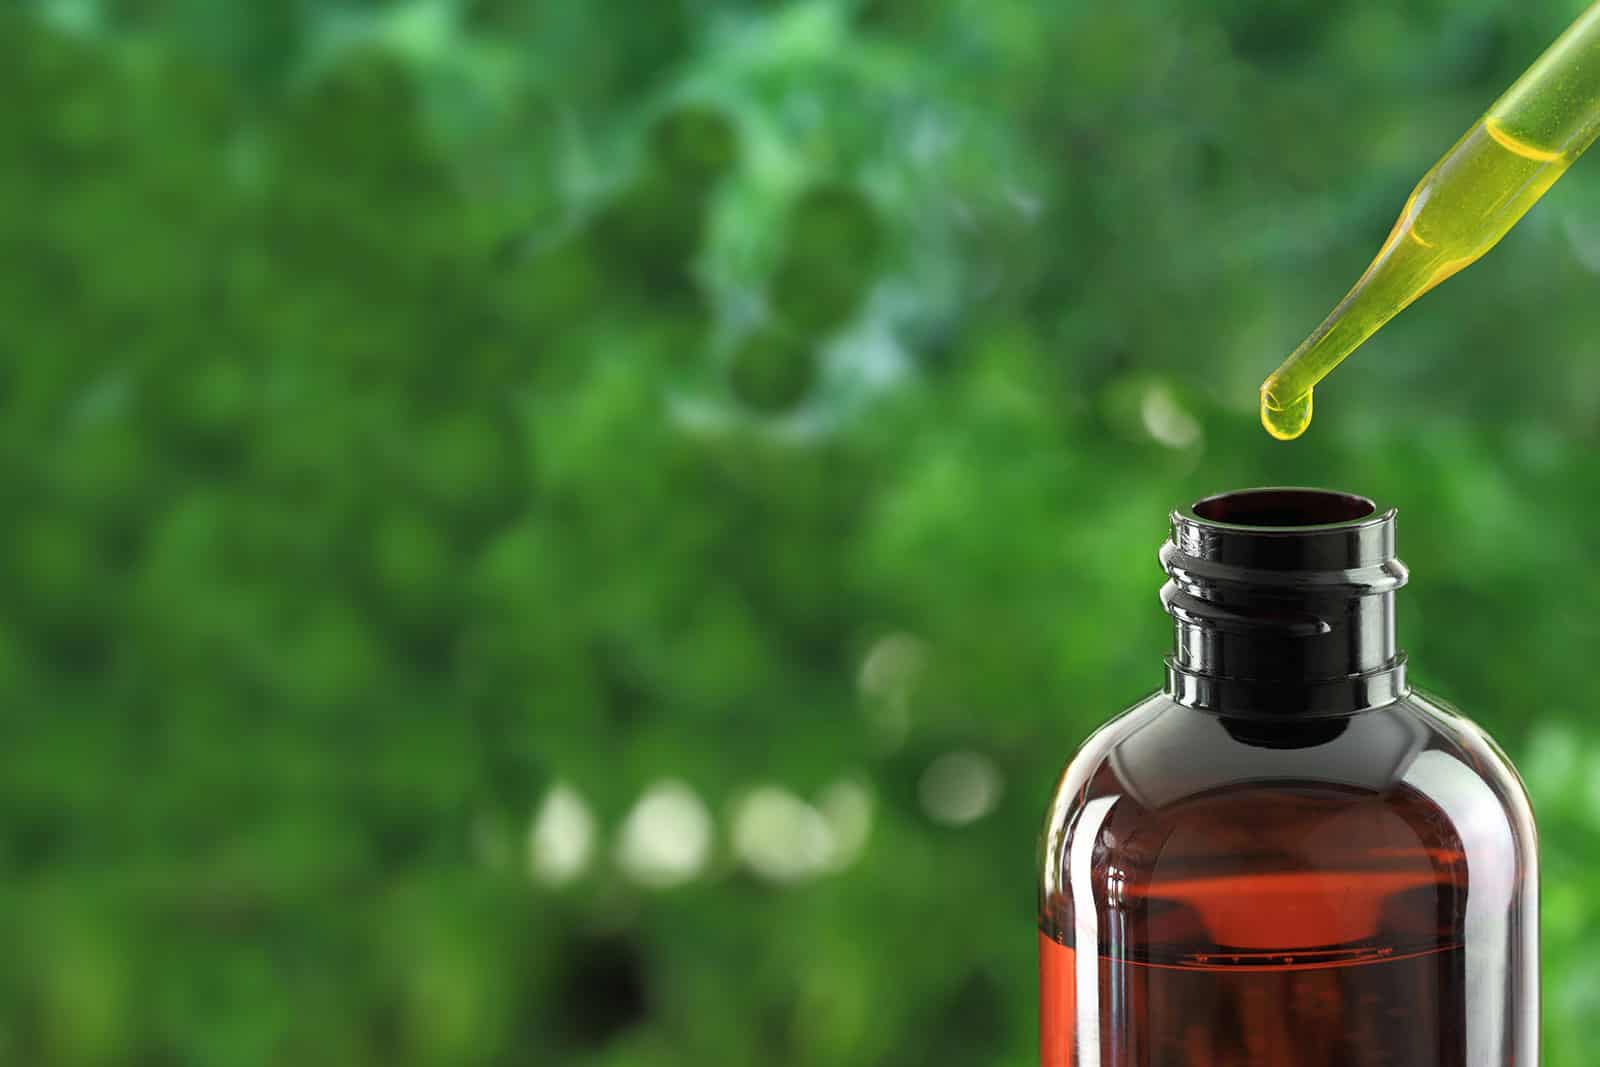 Discover the health benefits and uses of single essential oils with Wellness Aromas